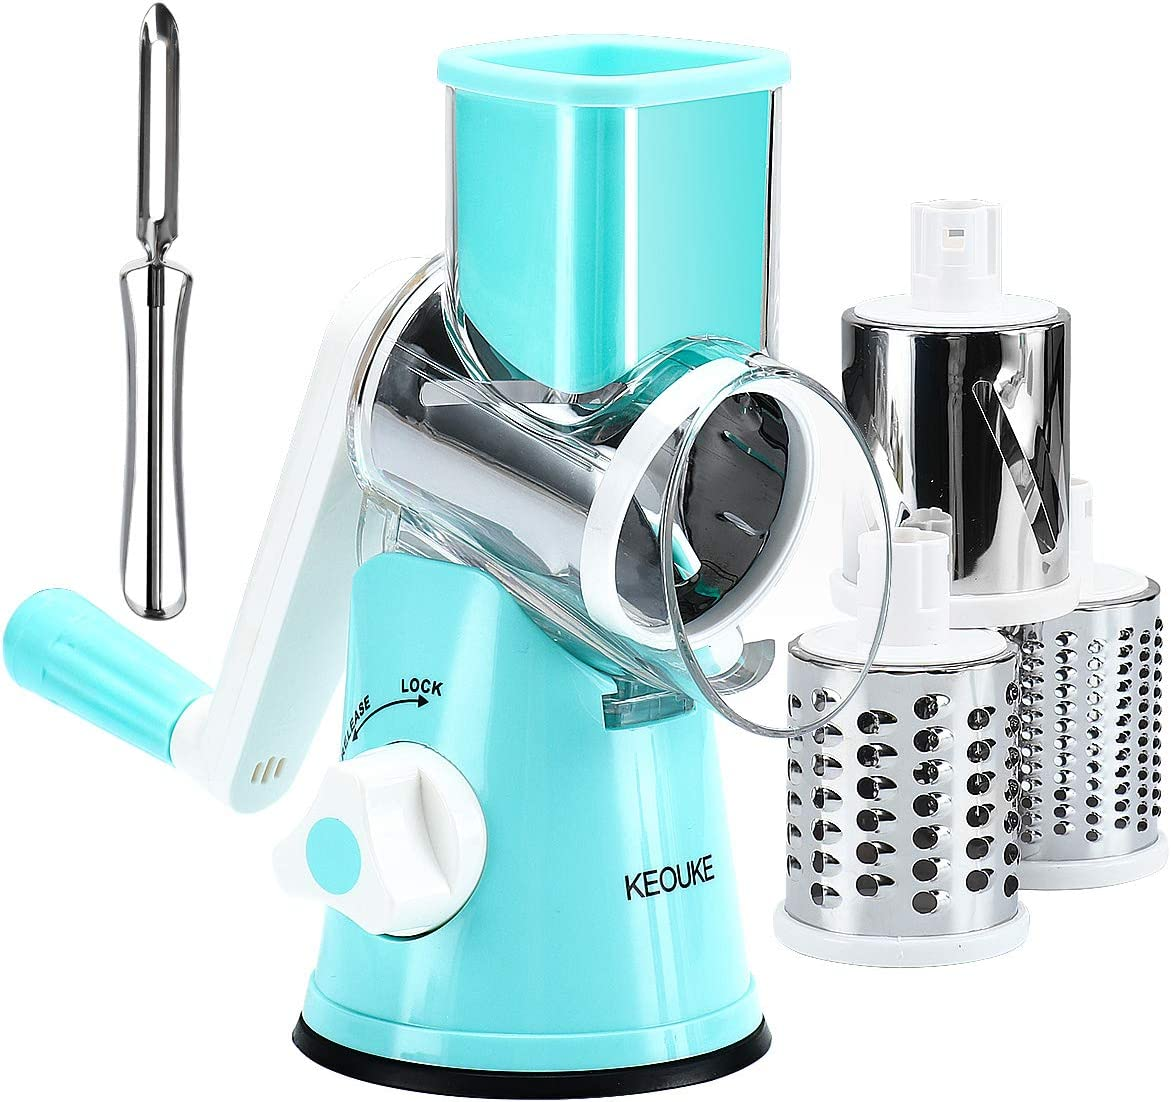 KEOUKE Rotary Cheese Grater Slicer - Round Mandoline Drum Slicer Manual Vegetable Slicer with a Stainless Steel peeler (Blue)